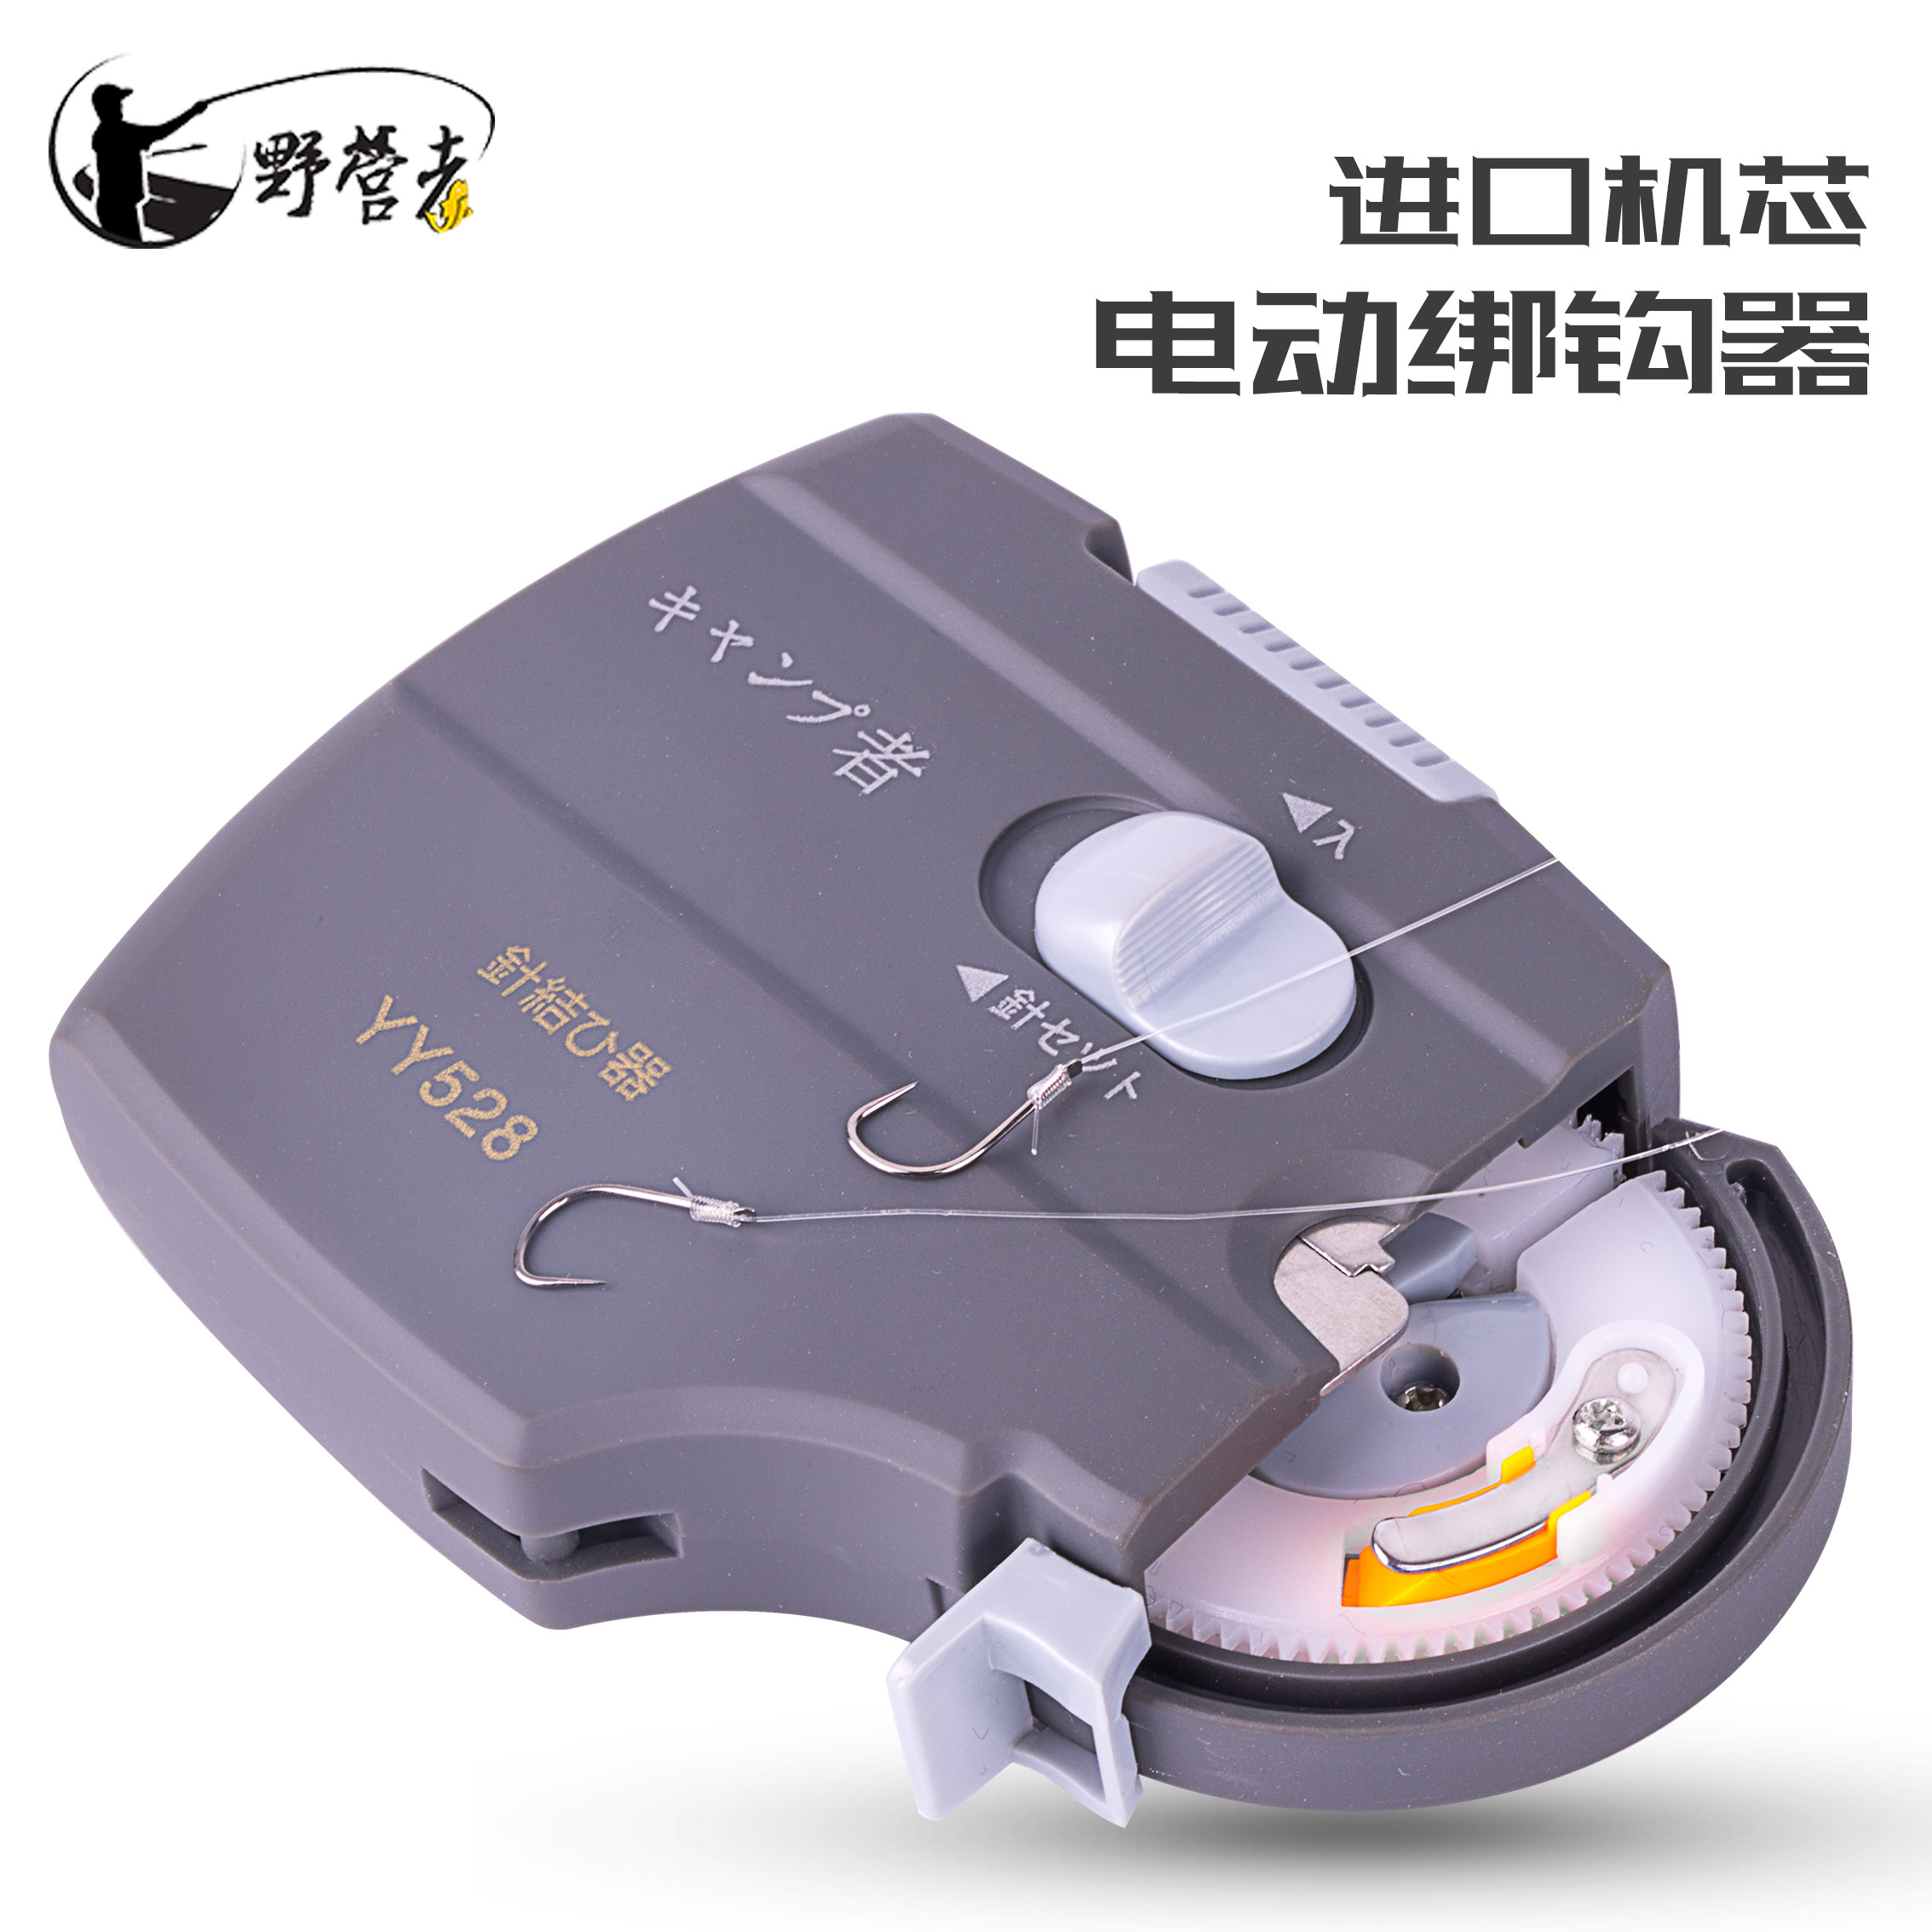 Campers New Electric Hook-binding Machine Imported Core Fully Automatic Needle-binding Hook-binding Machine Fishing Goods Hook-binding Machine